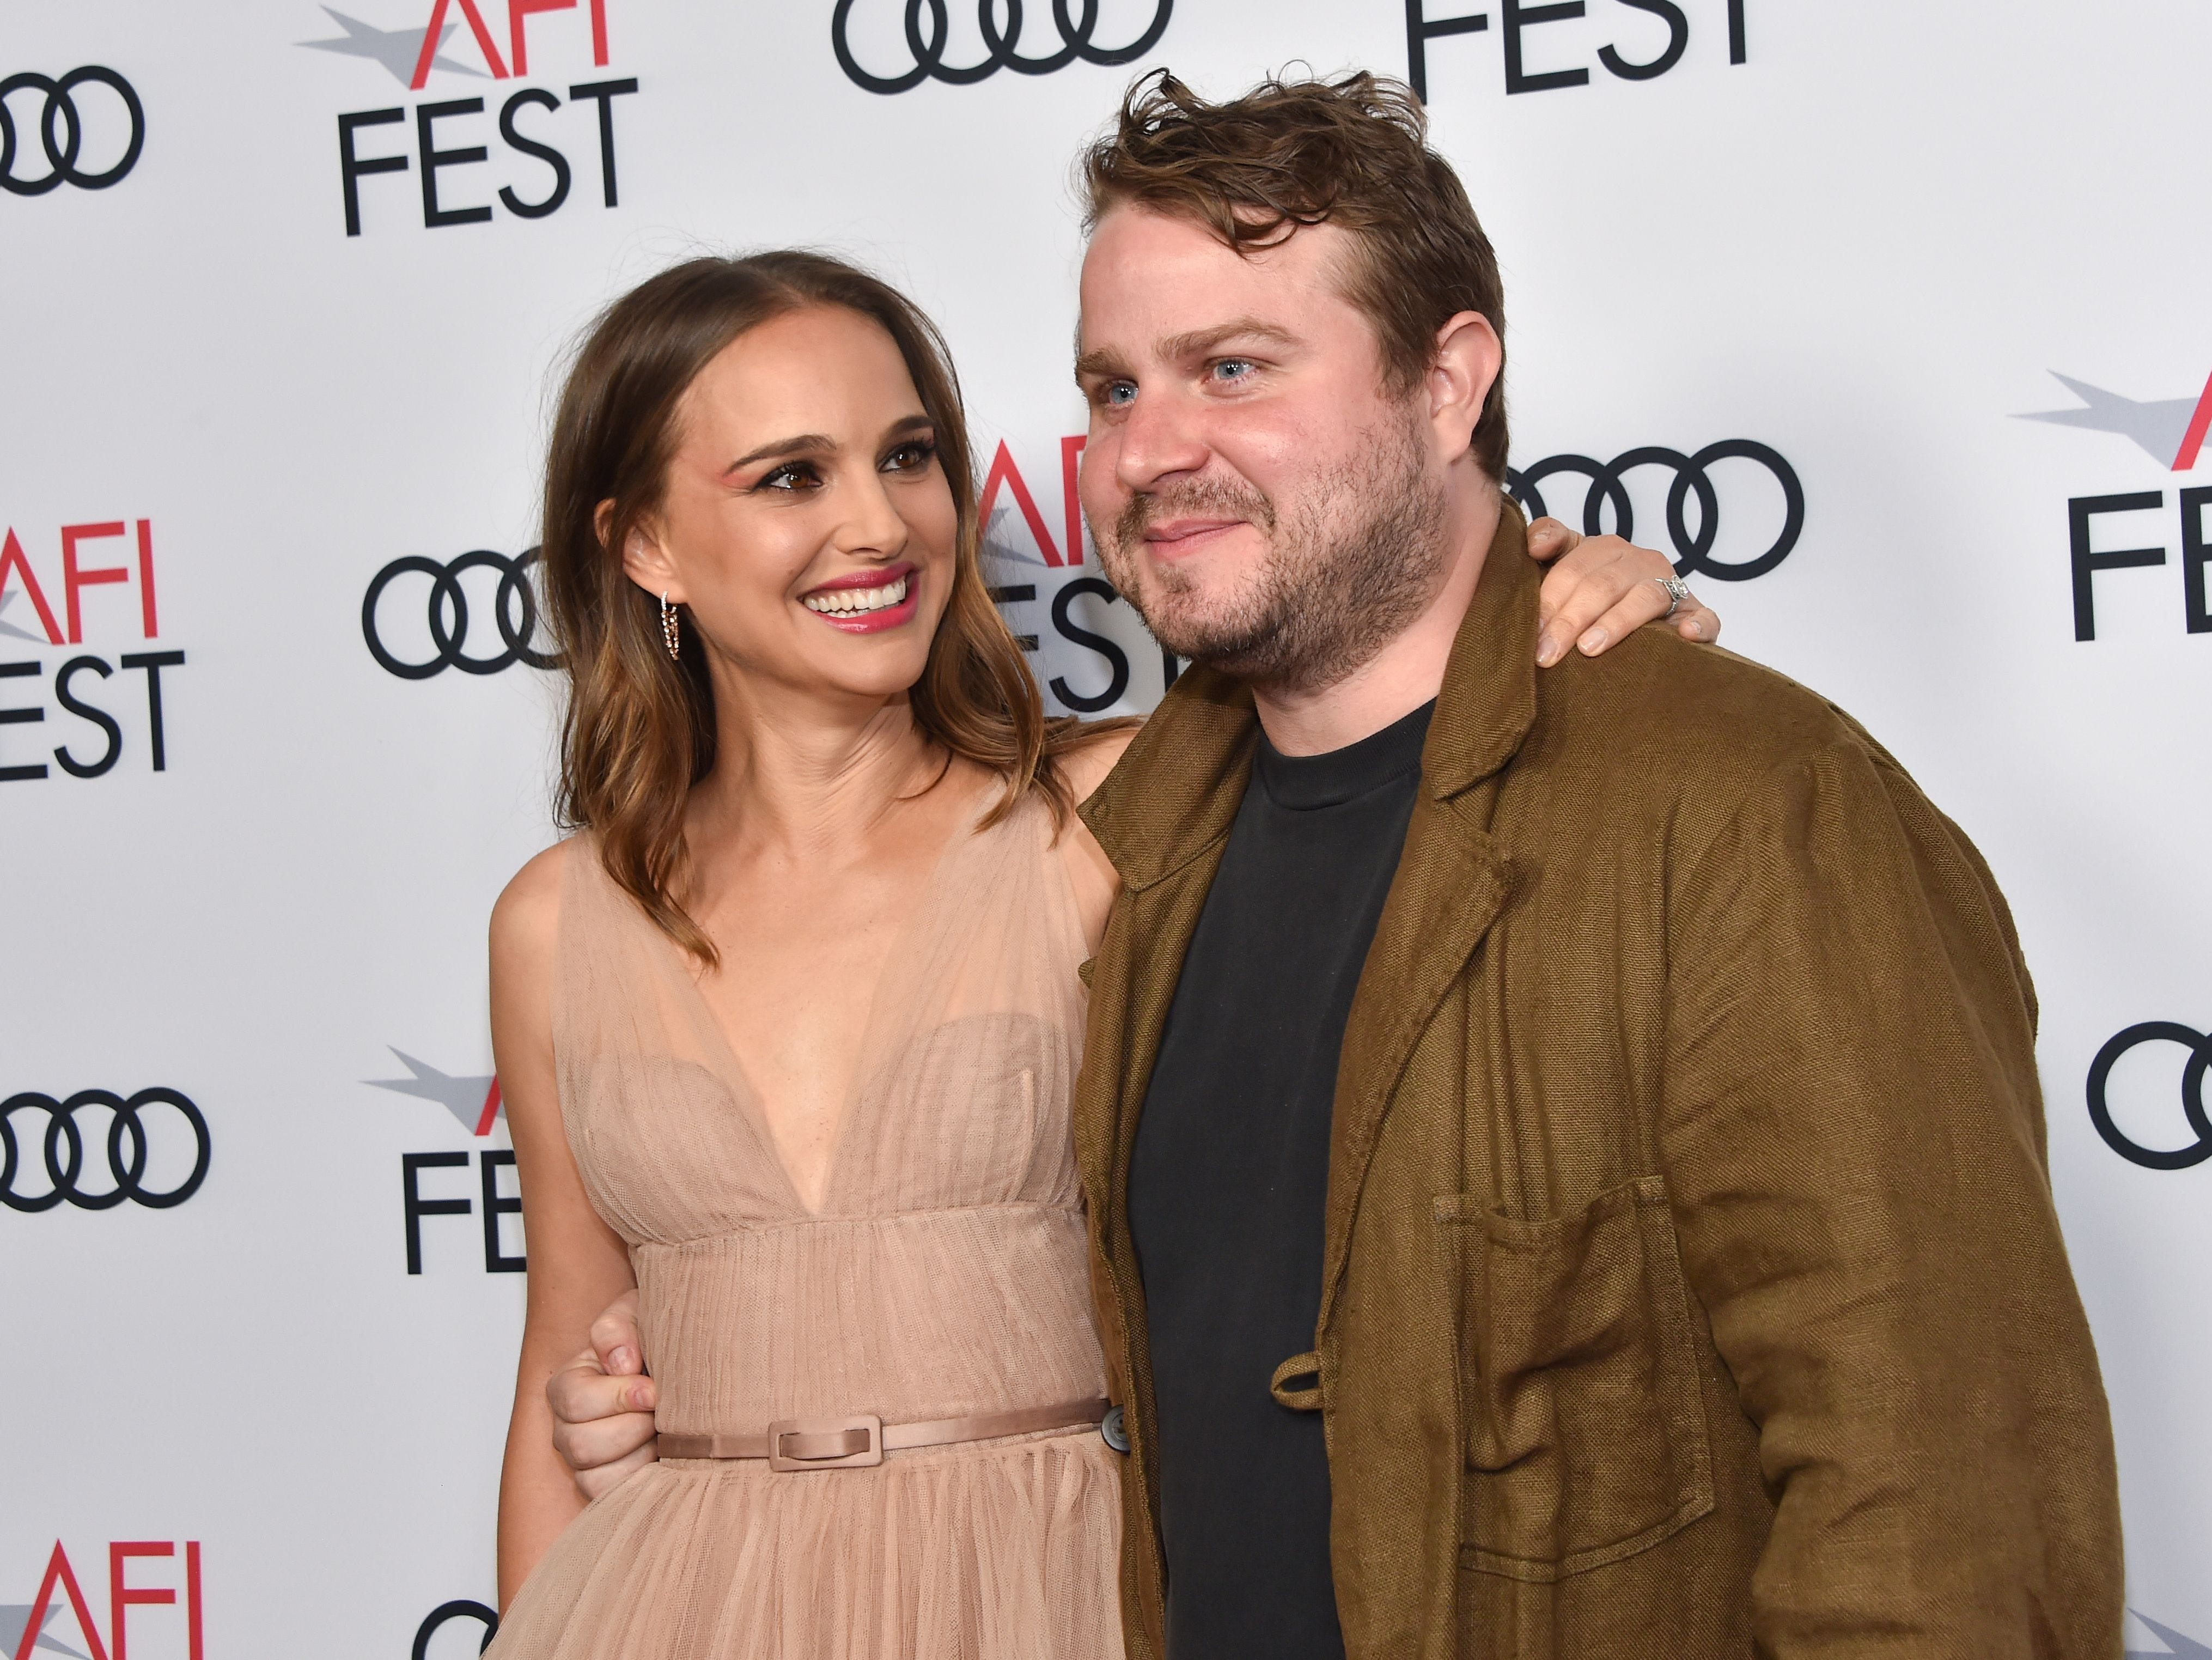 She also posed with director/writer Brady Corbet.